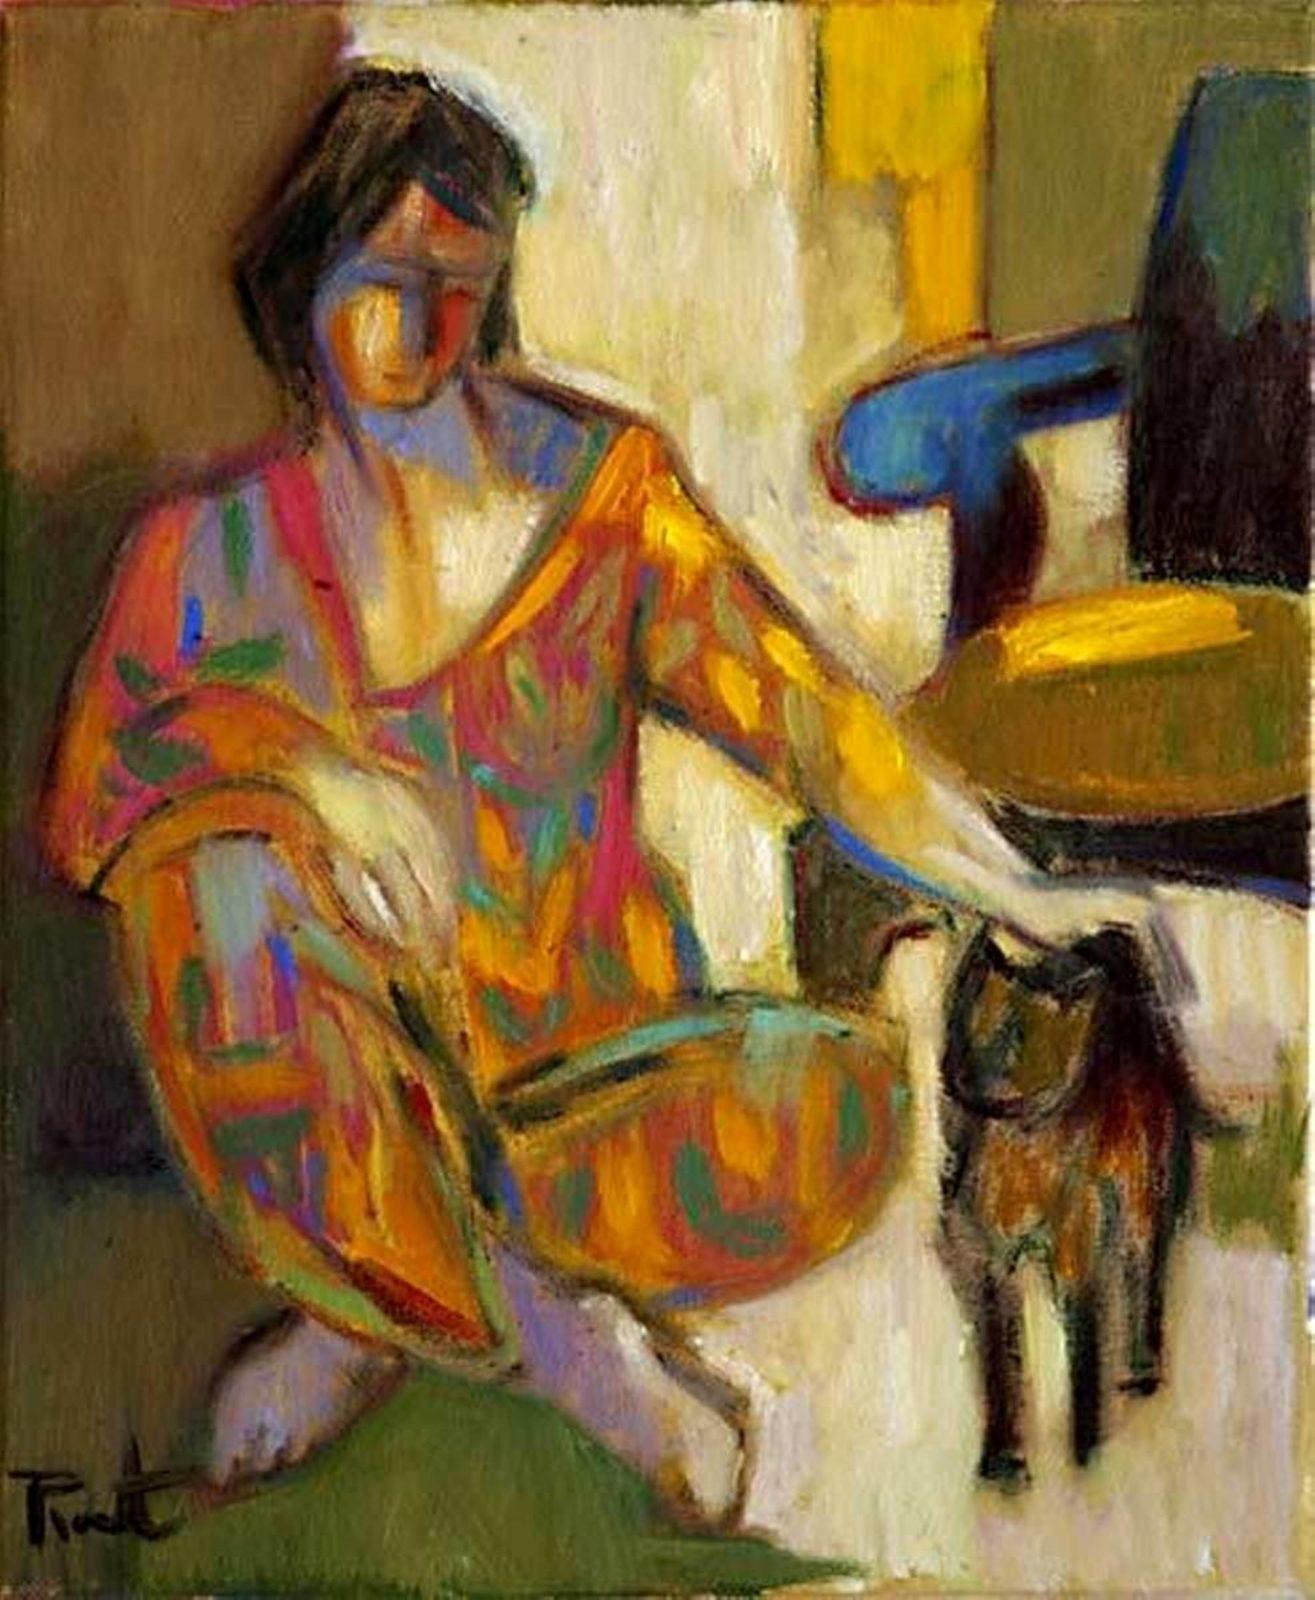 Pierre Pivet, Young Girl with a Cat, 1948